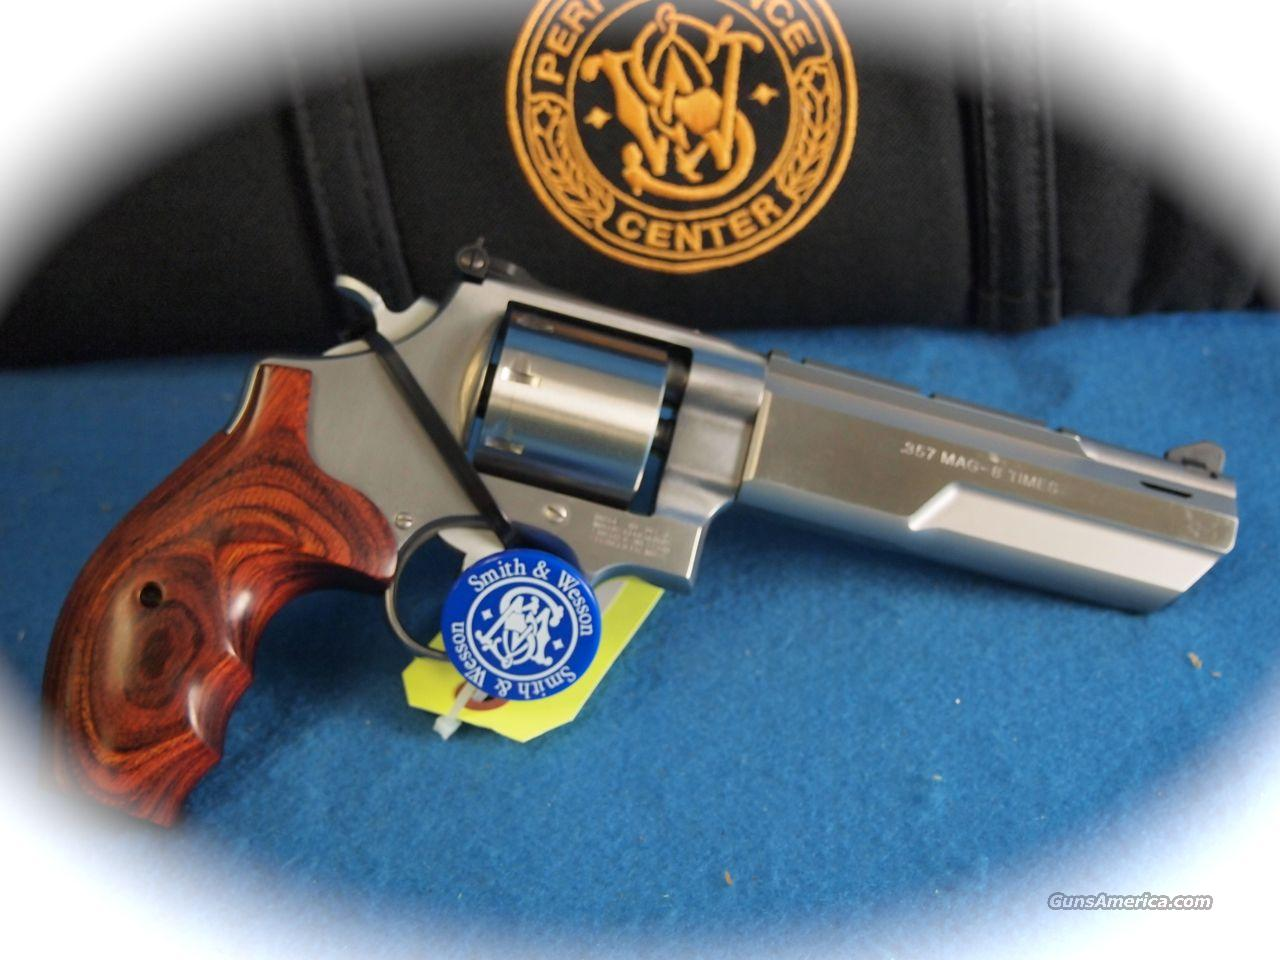 Smith & Wesson Model 627 .357 Mag Revolver Performance Center **Used**  Guns > Pistols > Smith & Wesson Revolvers > Performance Center